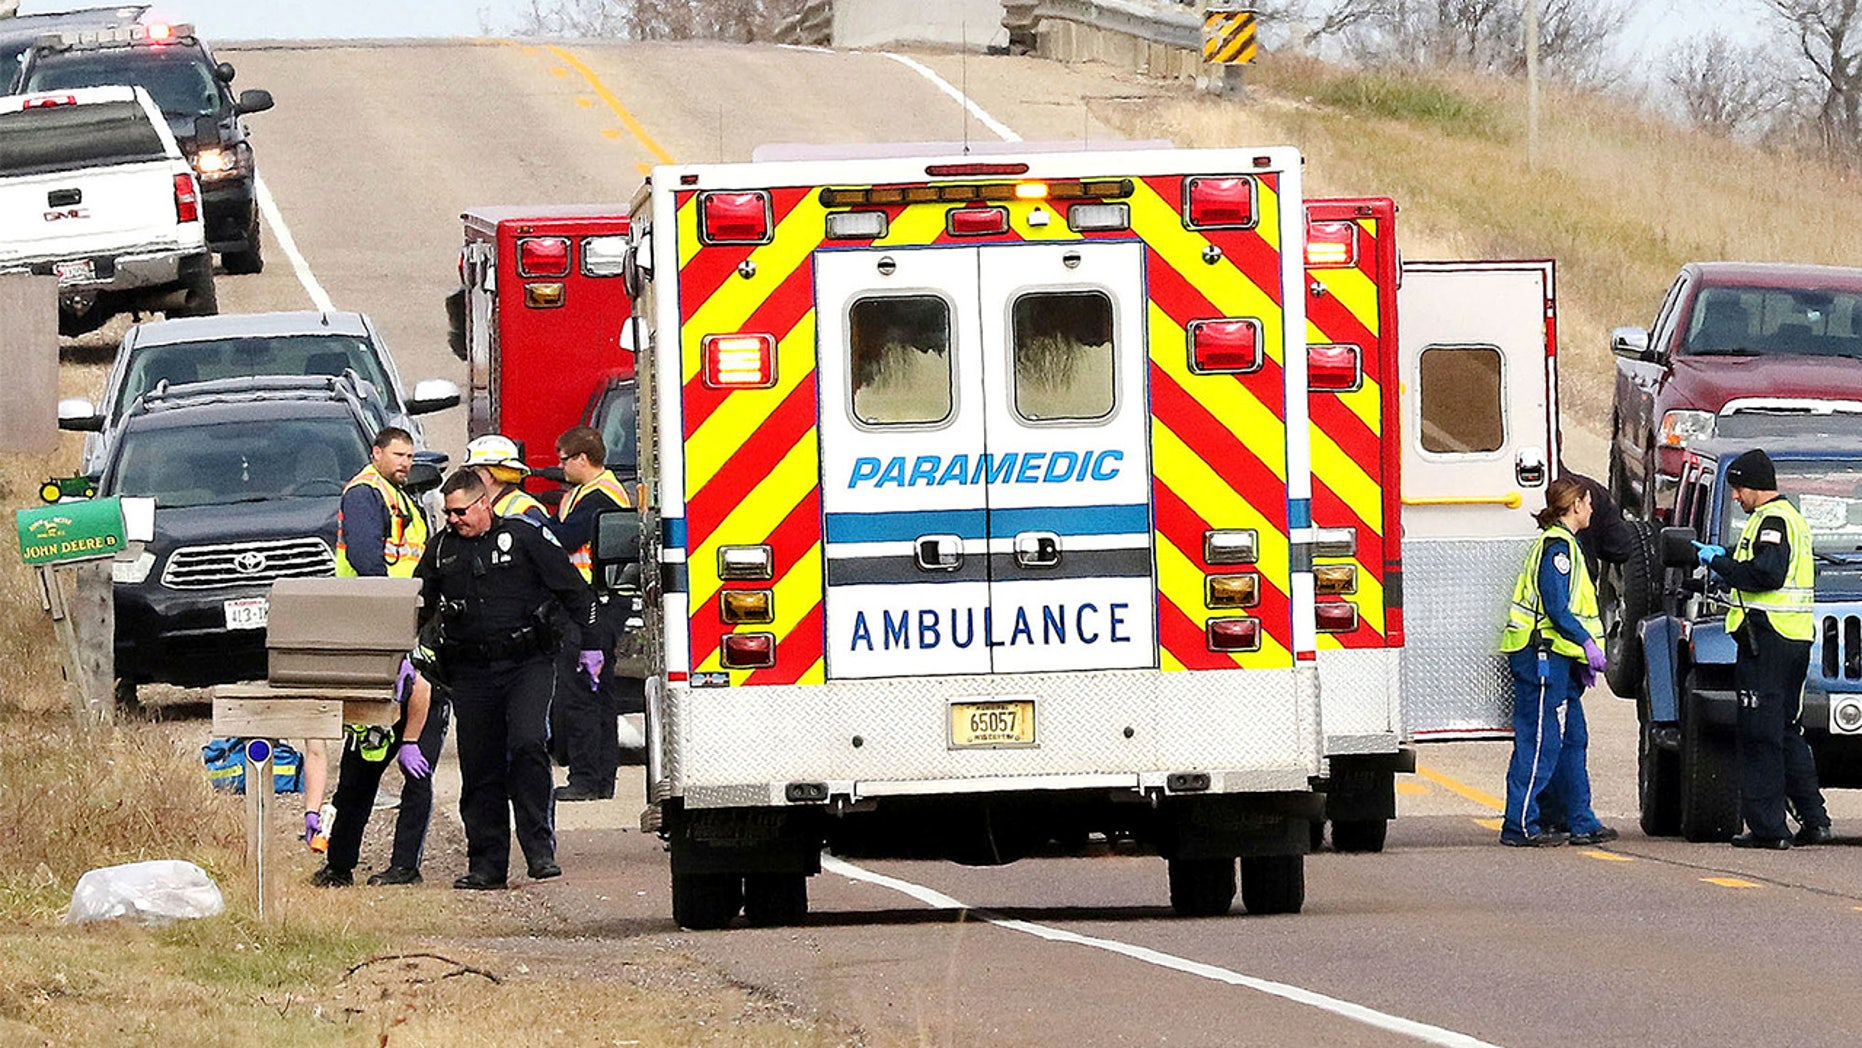 Emergency medical personnel gather at the scene of a hit-and-run accident Saturday, Nov. 3, 2018, in Lake Hallie, Wisconsin, that killed three girls and an adult. (Steve Kinderman/The Eau Claire Leader-Telegram via AP)